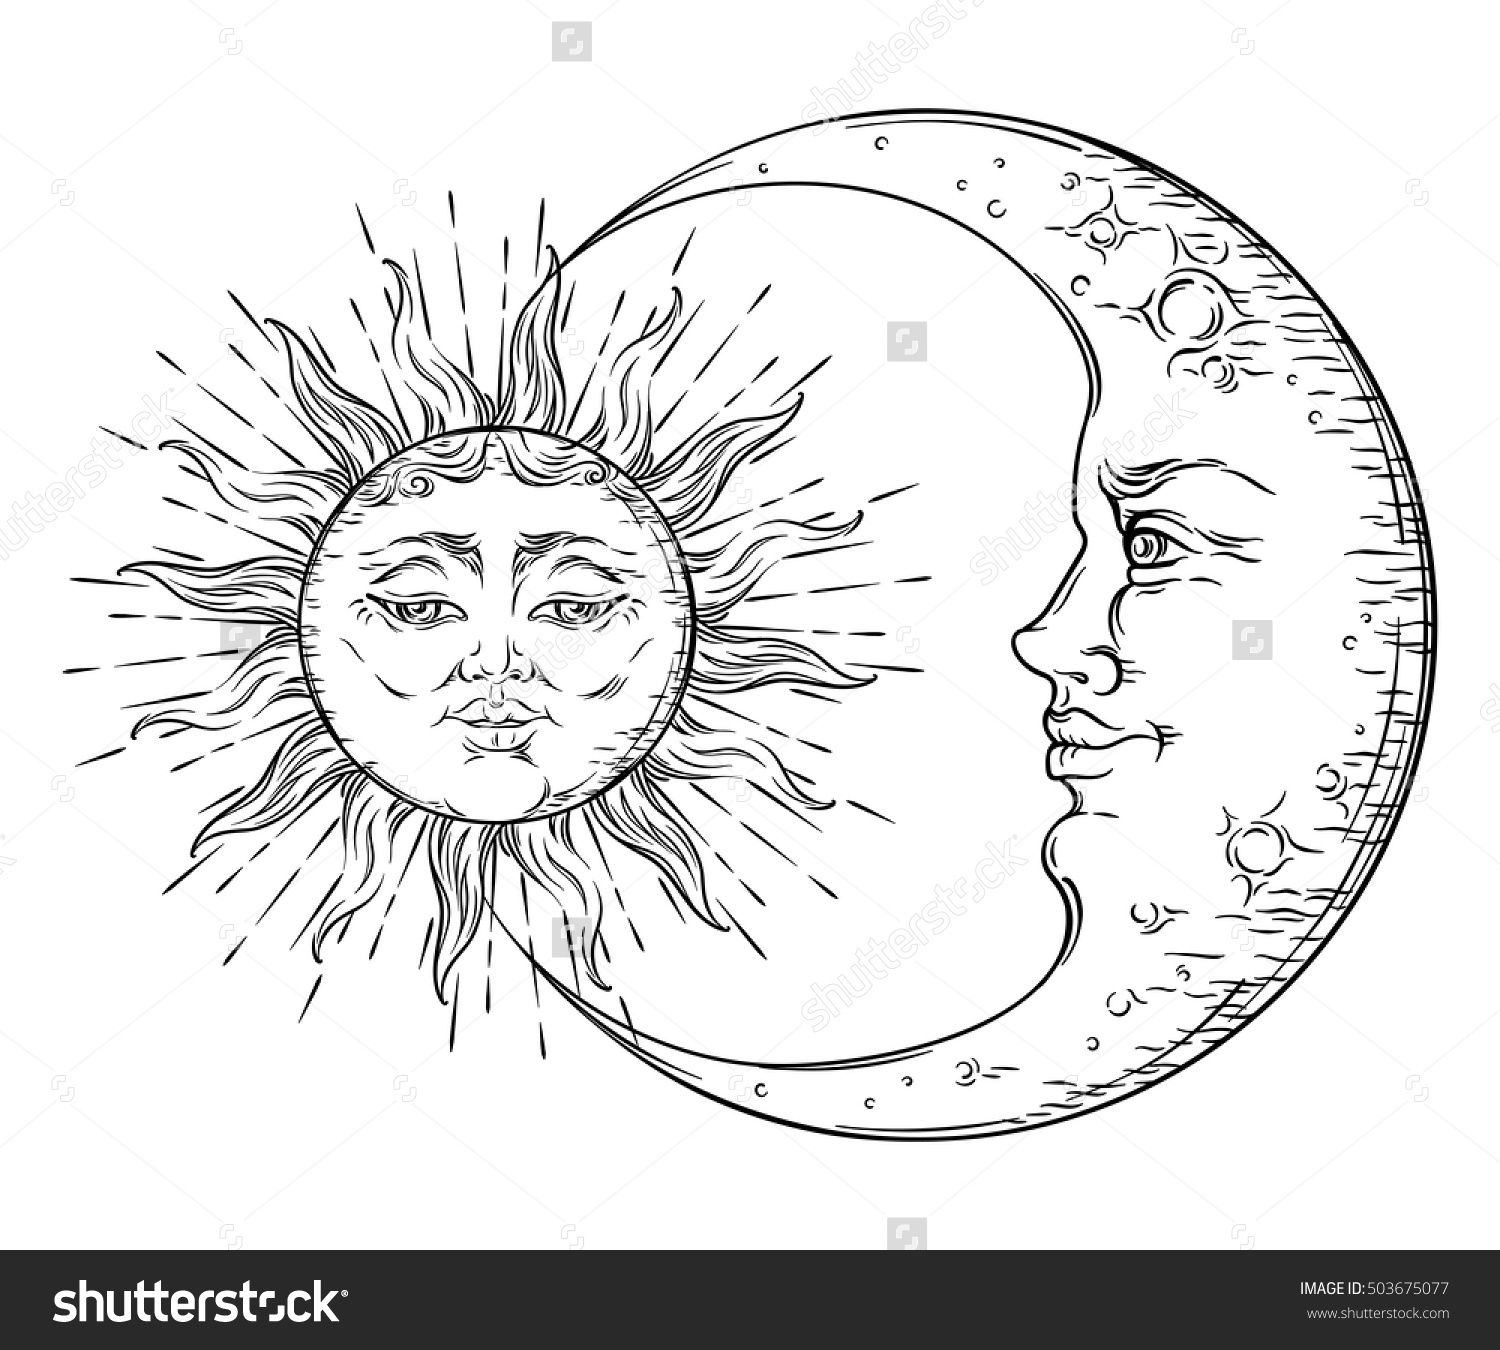 Antique Style Hand Drawn Art Sun And Crescent Moon. Boho